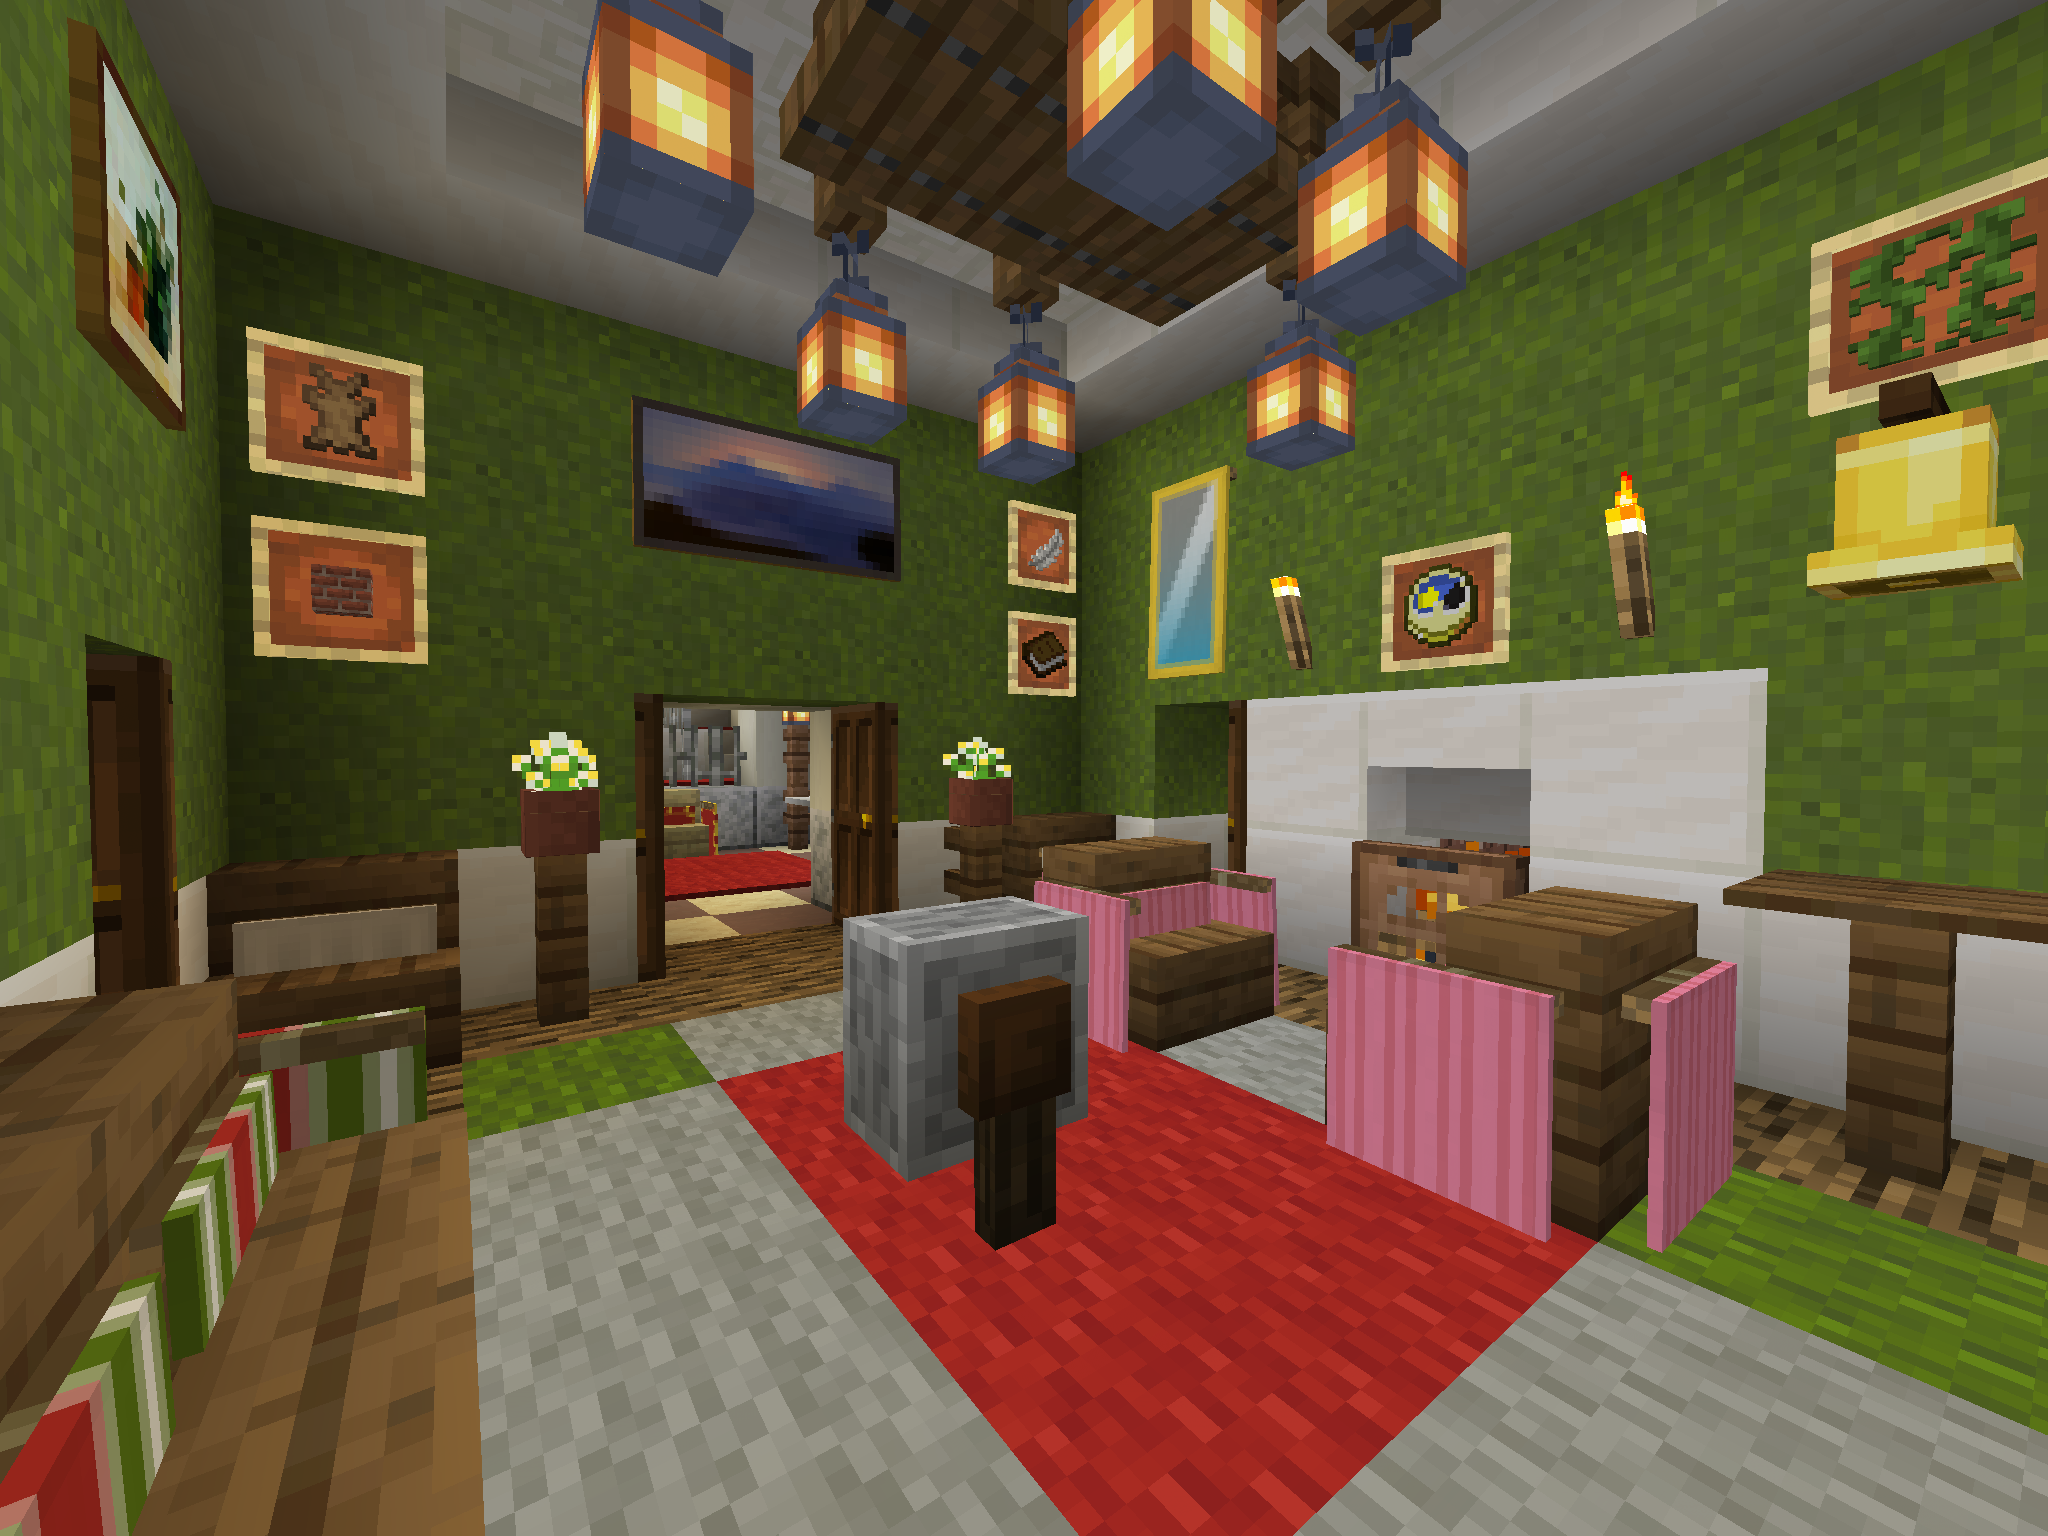 Pin By Bethan Walker On Minecraft House Interior Designs Cool Minecraft Houses Minecraft Castle Minecraft Houses